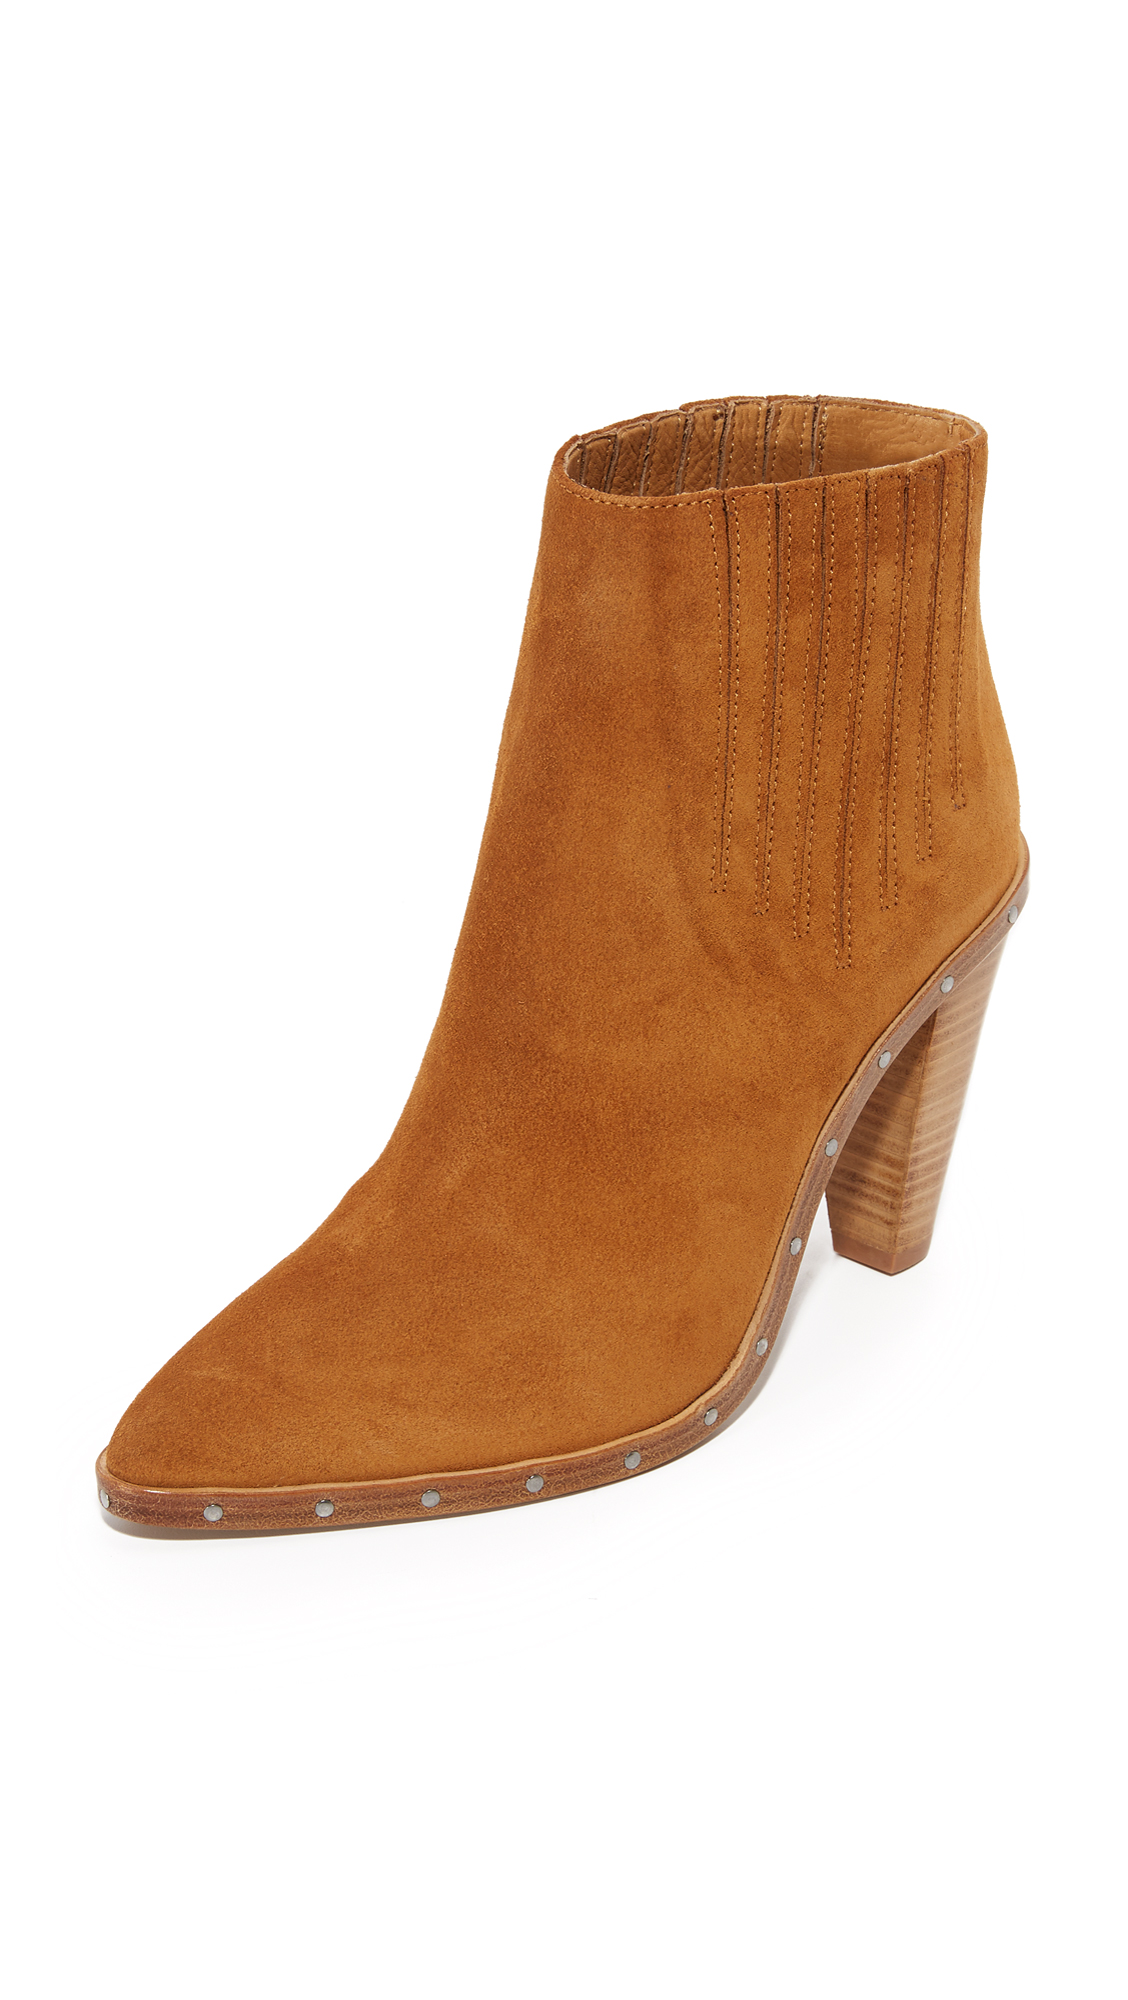 Iro Noliana Booties - Camel